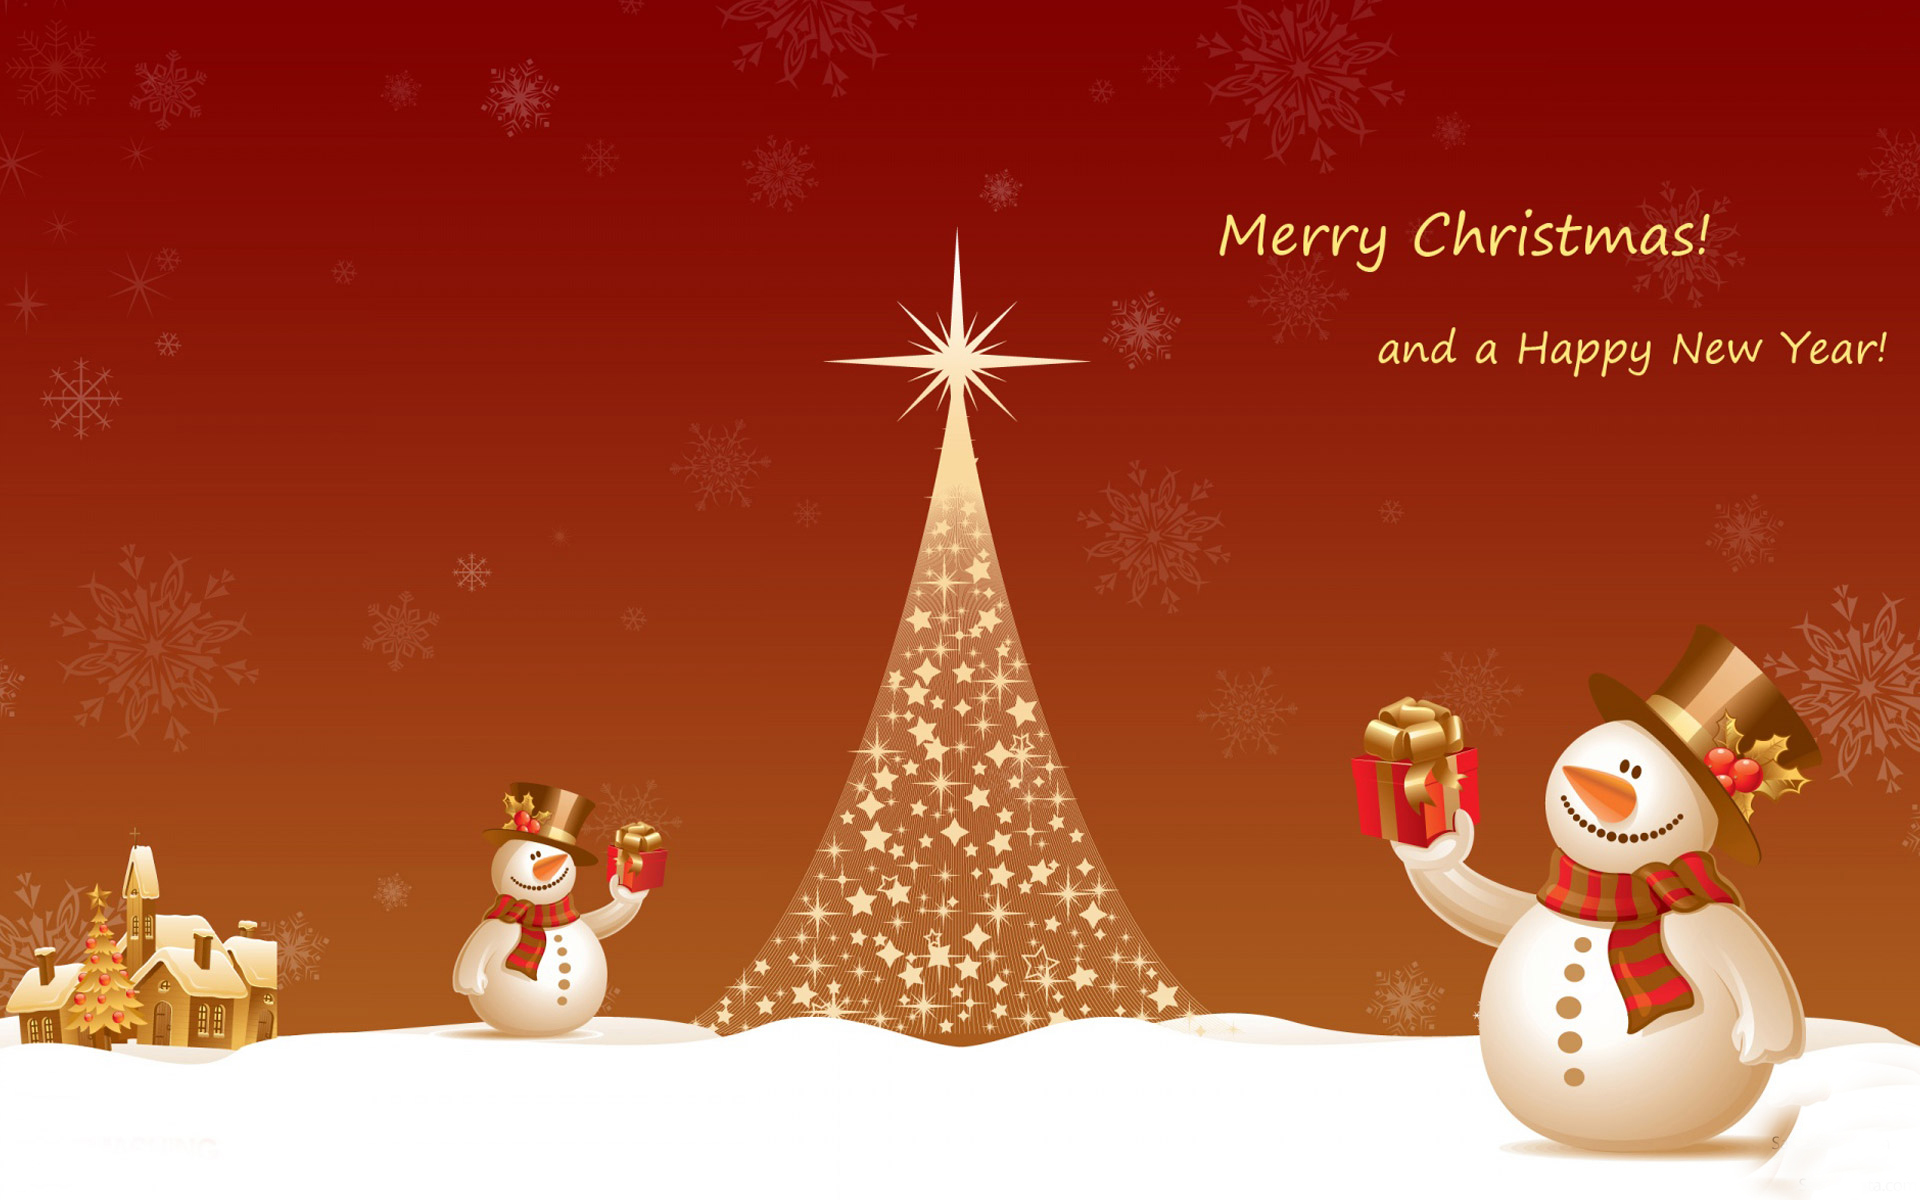 Merry christmas and happy new year wallpaper for download